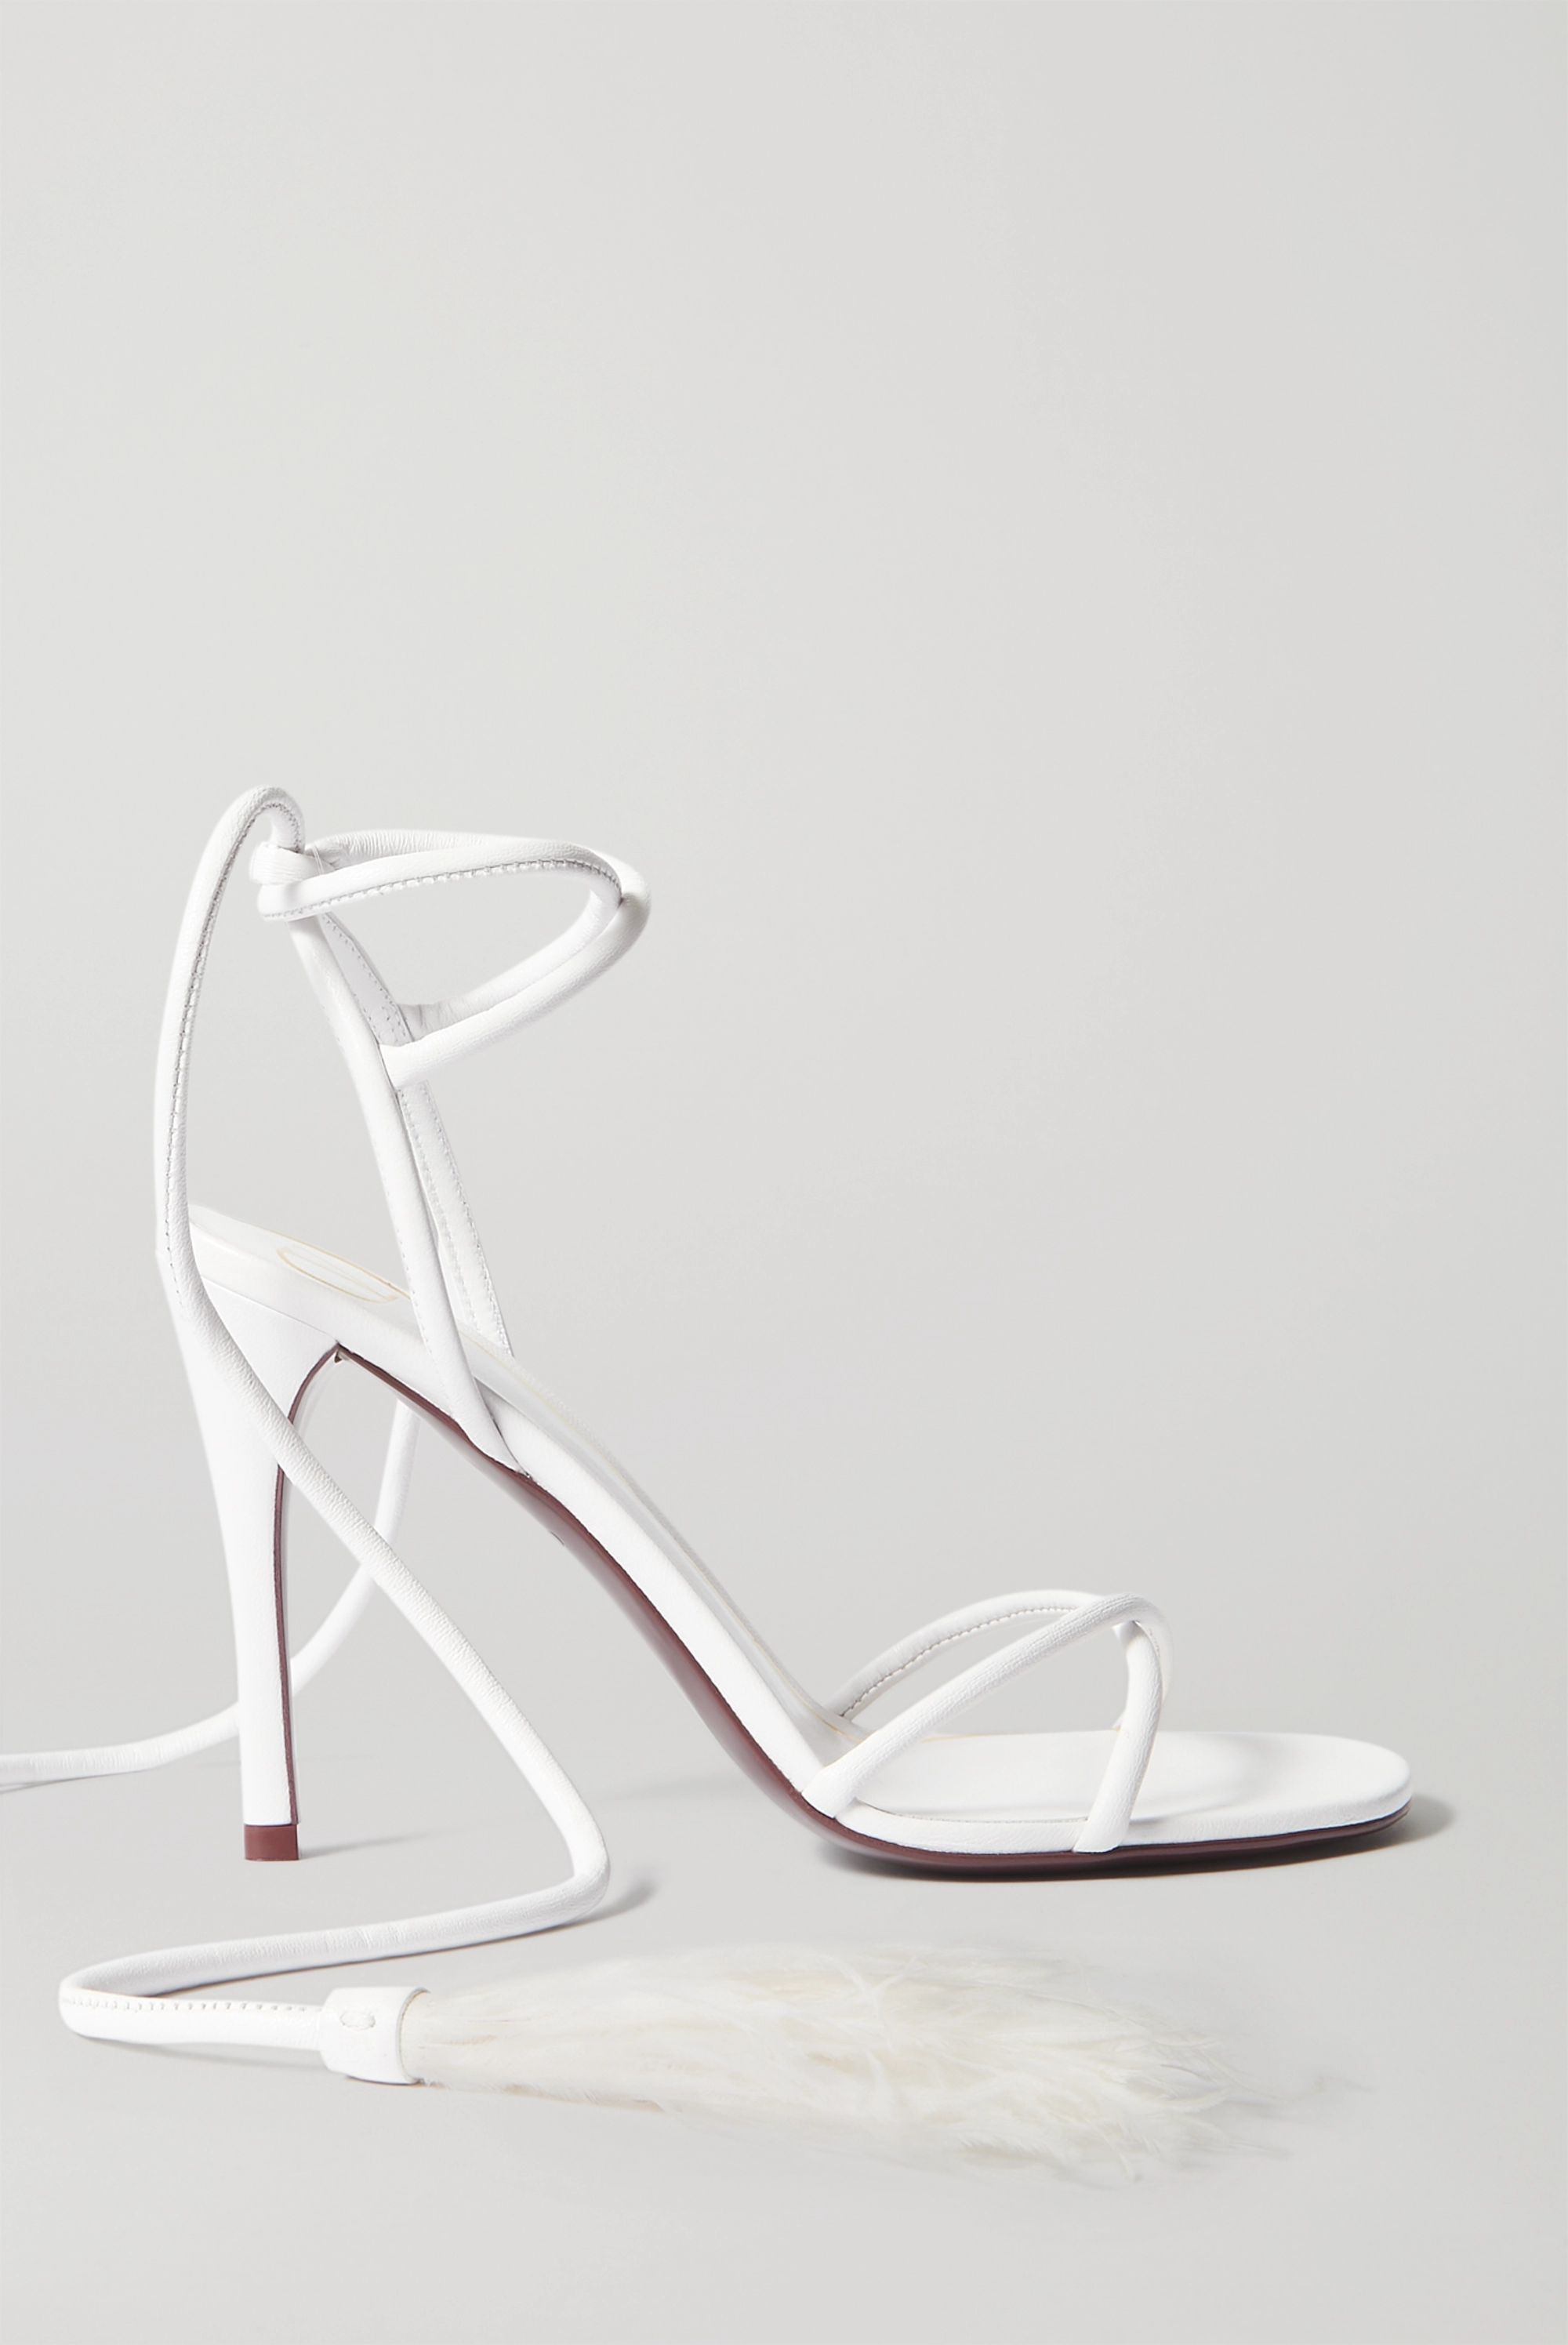 Valentino Valentino Garavani Upflair 100 feather-trimmed leather sandals